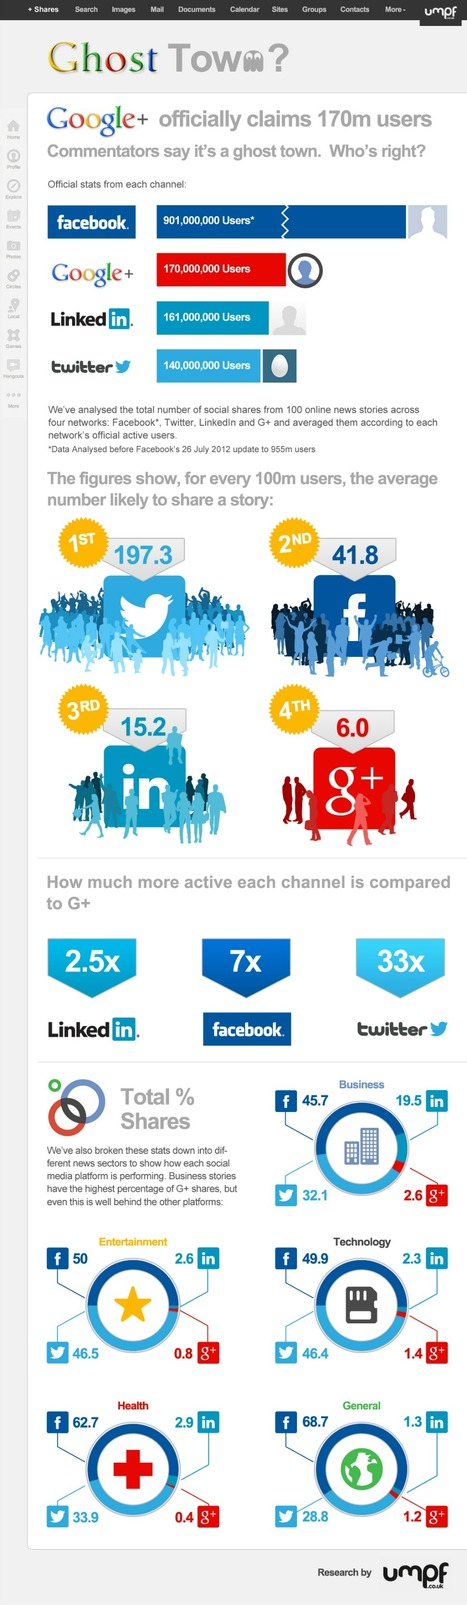 Google+ Plus: Social Media Website Turning into Ghost Town Marketing [Infographic] | Leveraging Information | Scoop.it